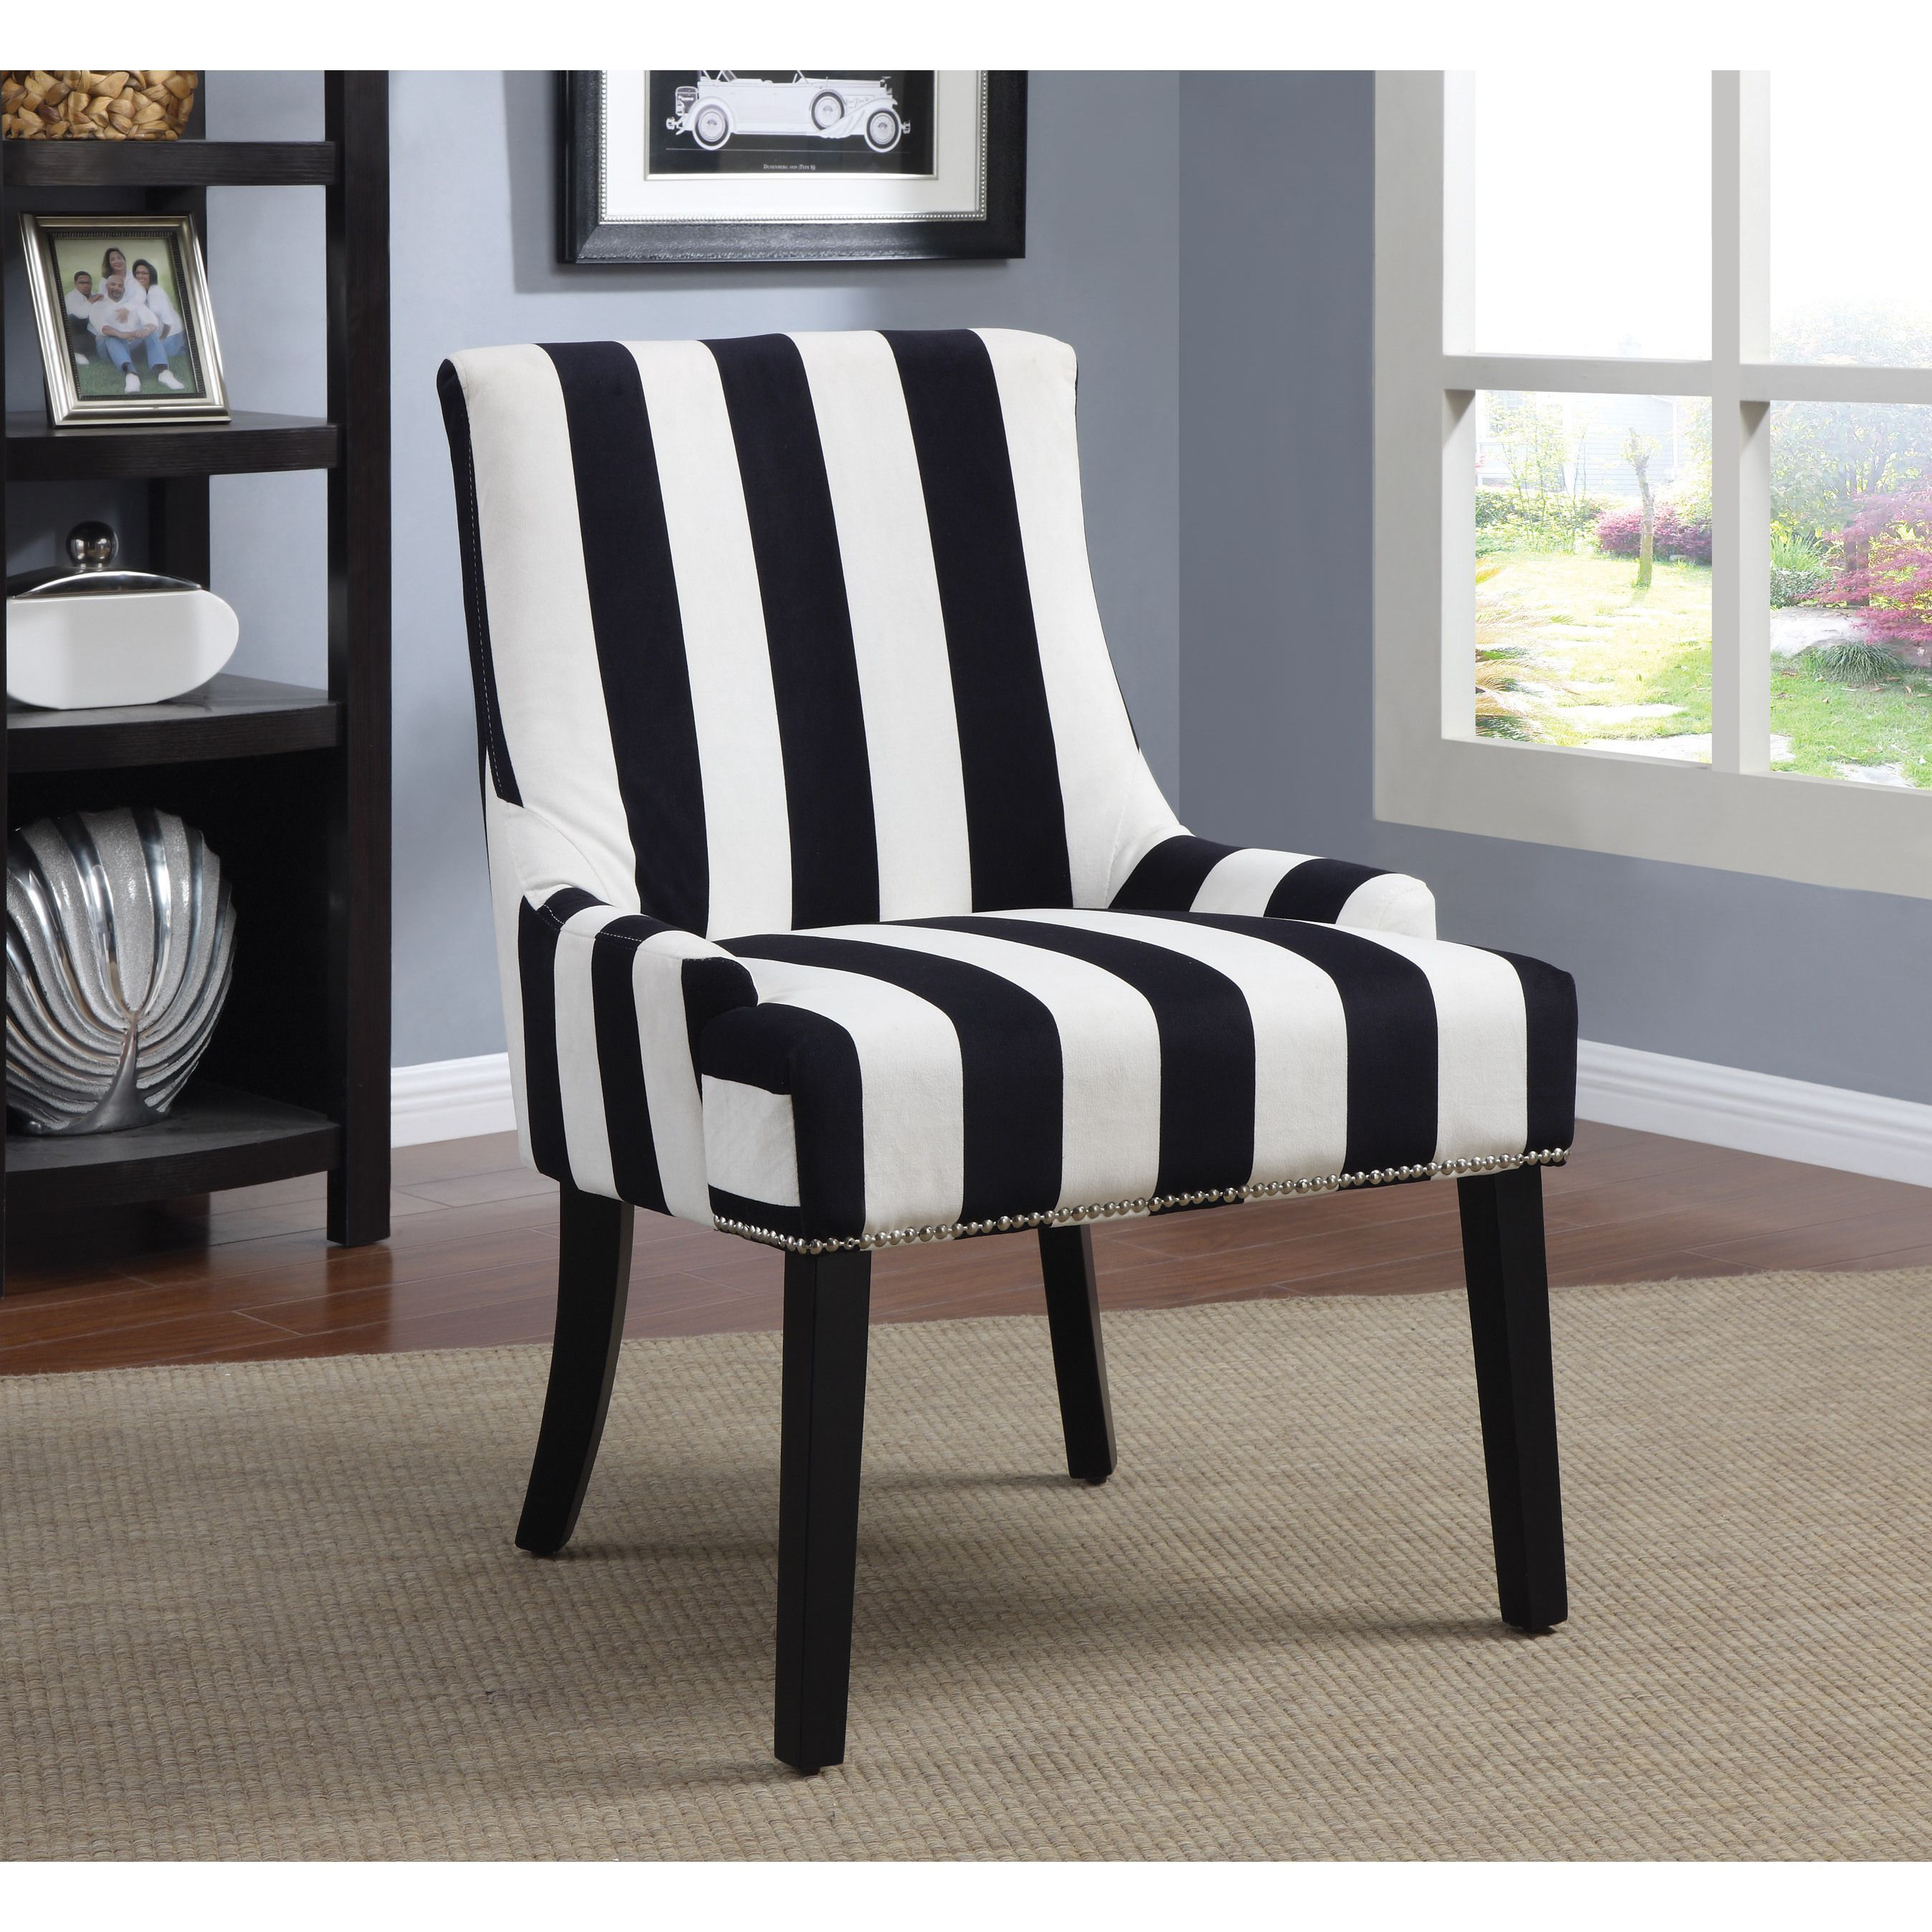 Pleasing Transitional Midnight Blue And White Accent Chair In 2019 Caraccident5 Cool Chair Designs And Ideas Caraccident5Info